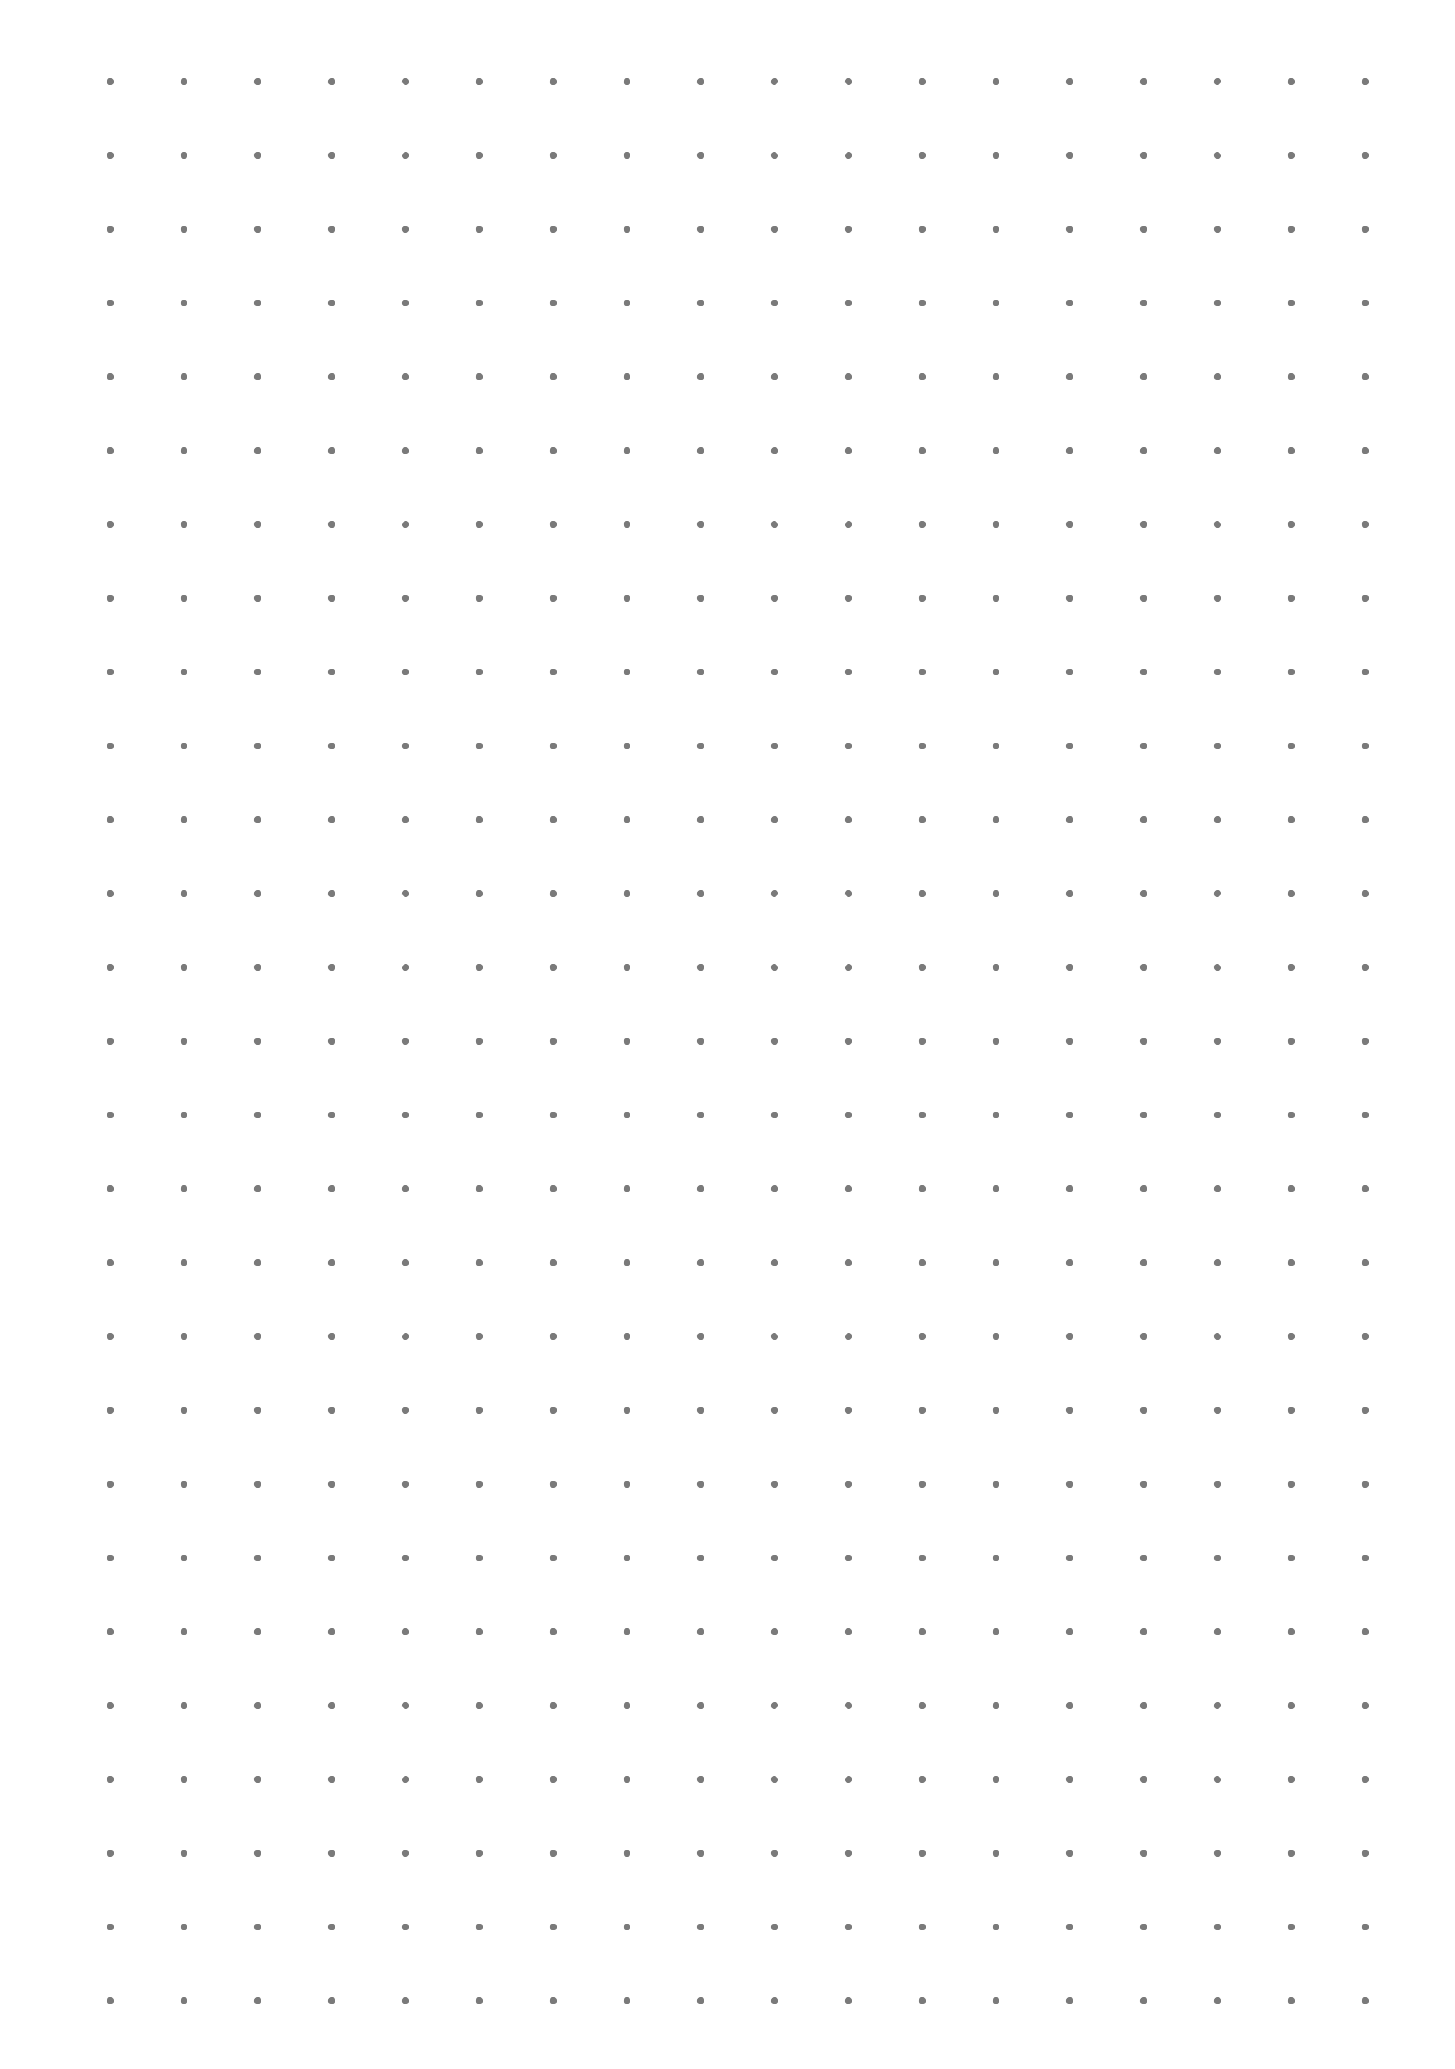 Dot Grid Paper With 7 5 Mm Spacing Grid Paper Paper